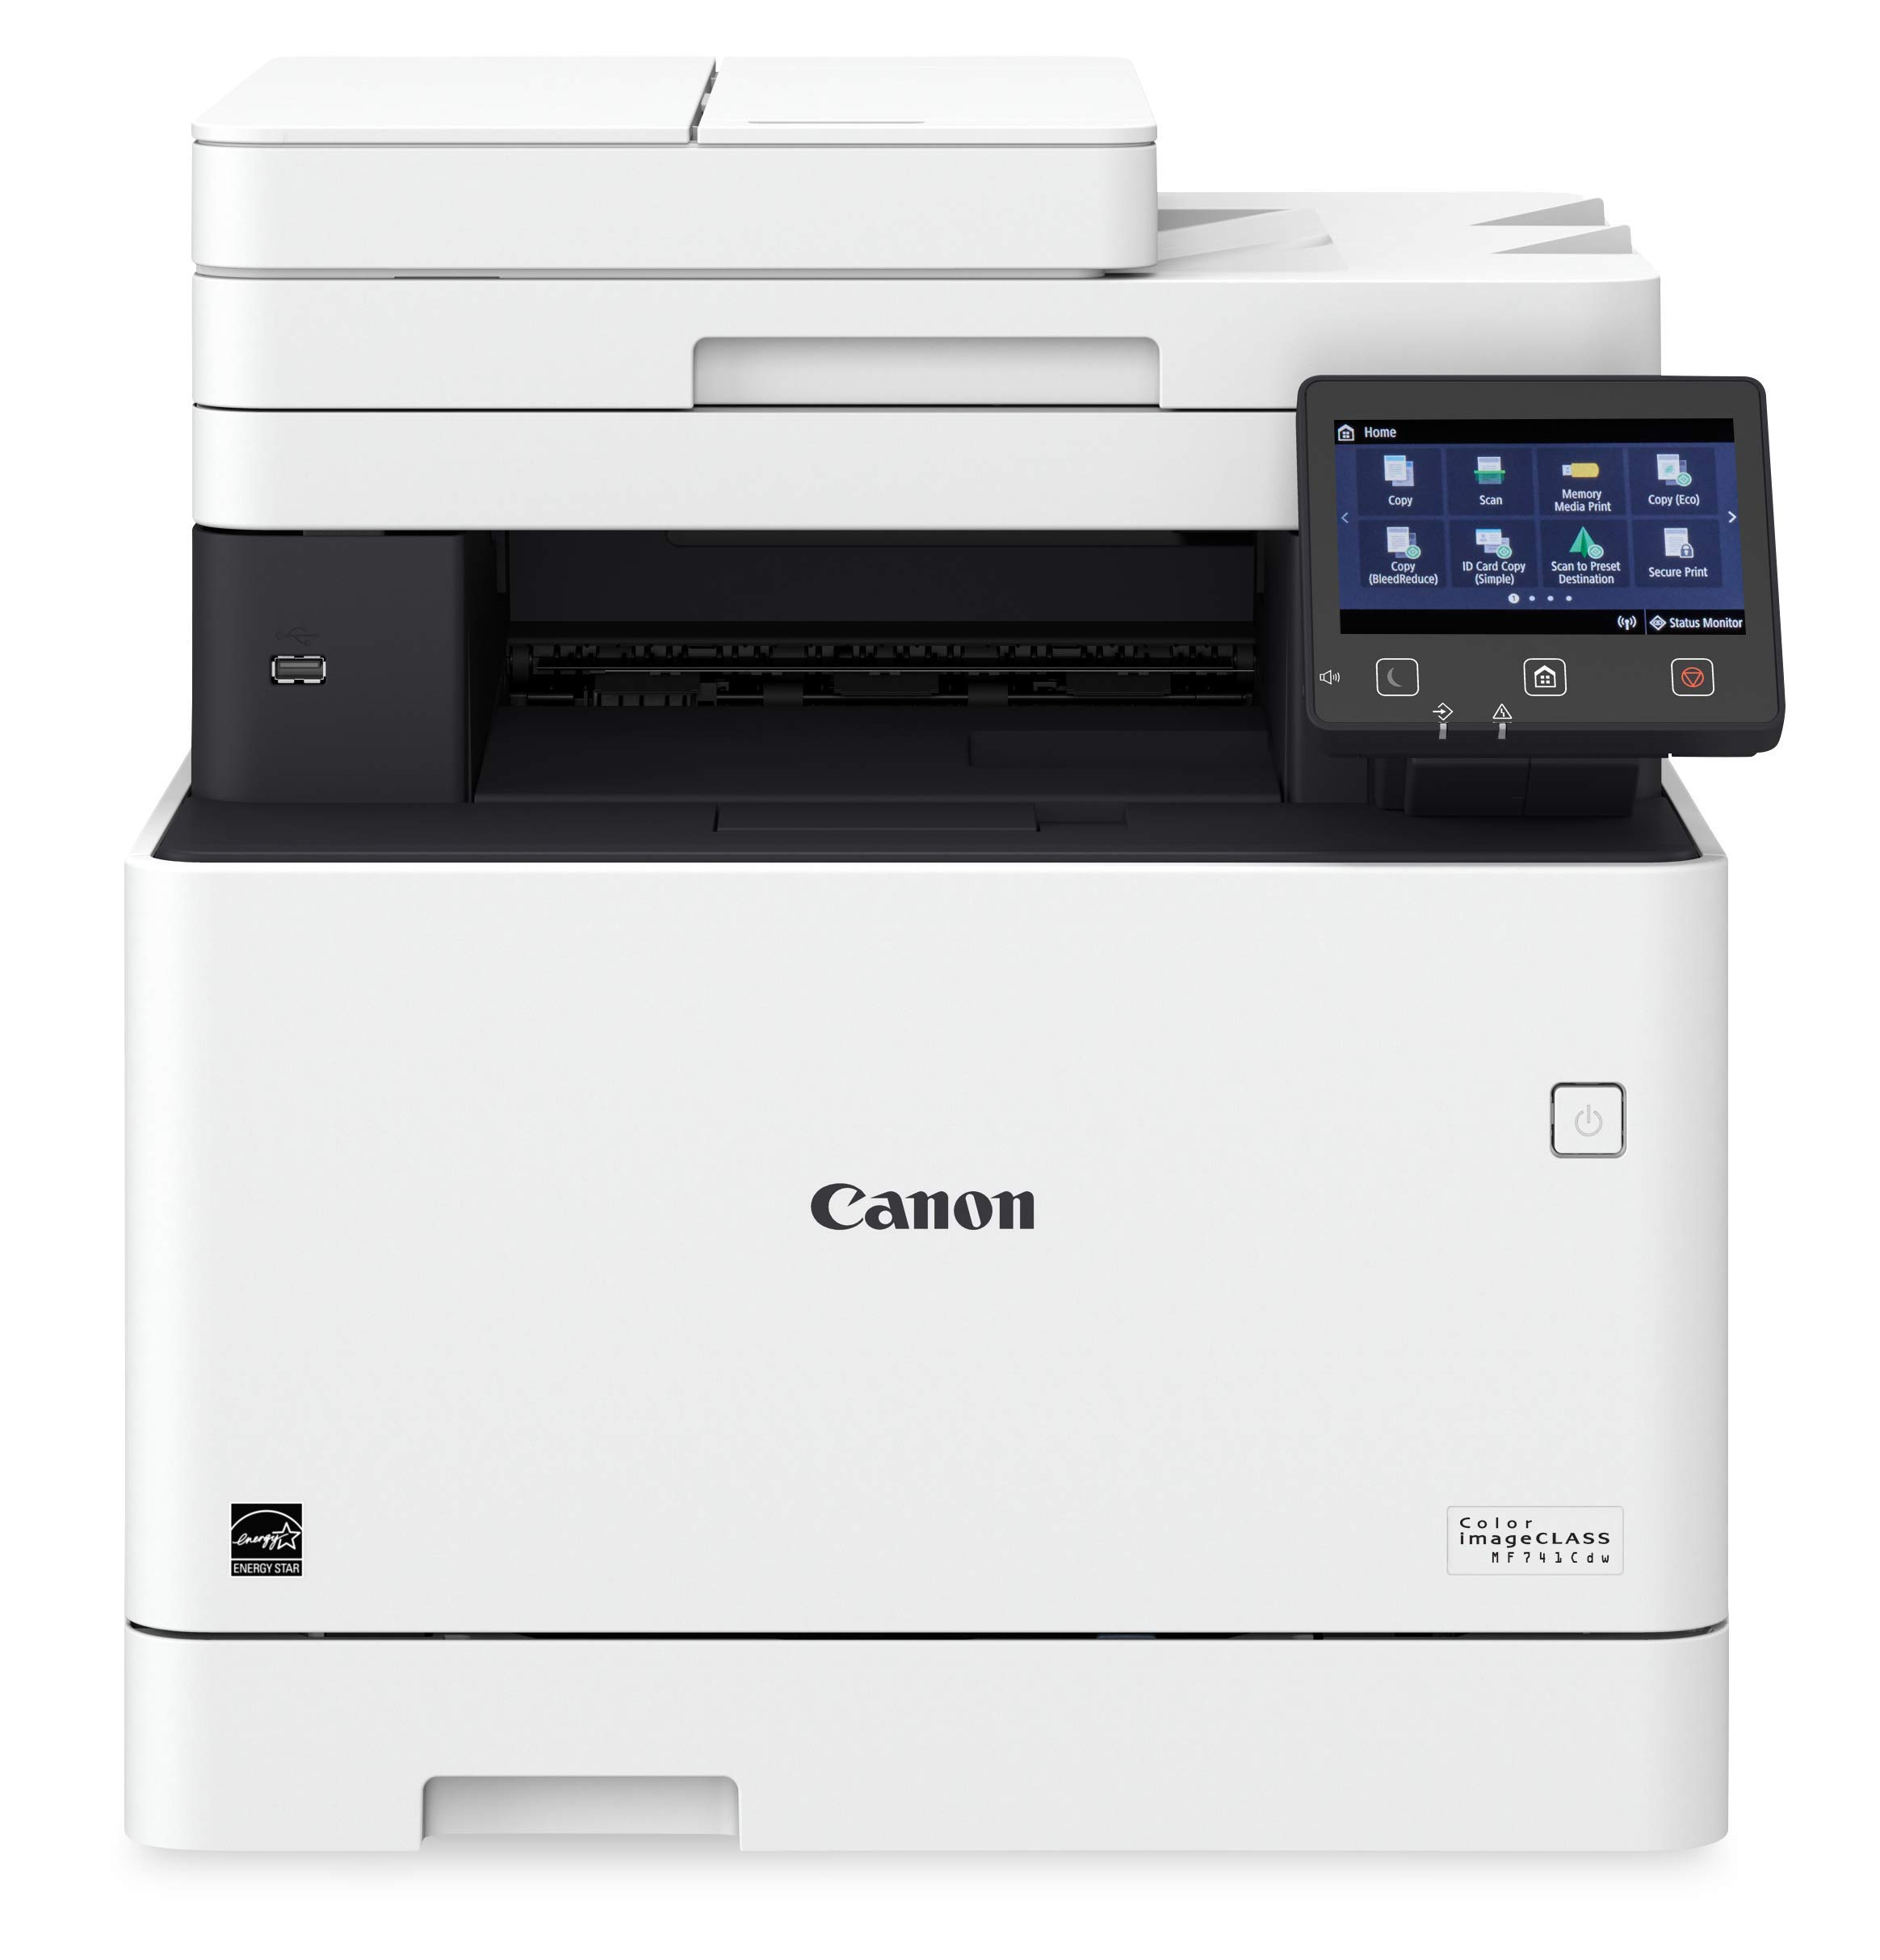 Canon Color imageCLASS MF741Cdw - Multifunction, Wireless, Mobile Ready, Duplex Laser Printer (Comes with 3 Year Limited Warranty)